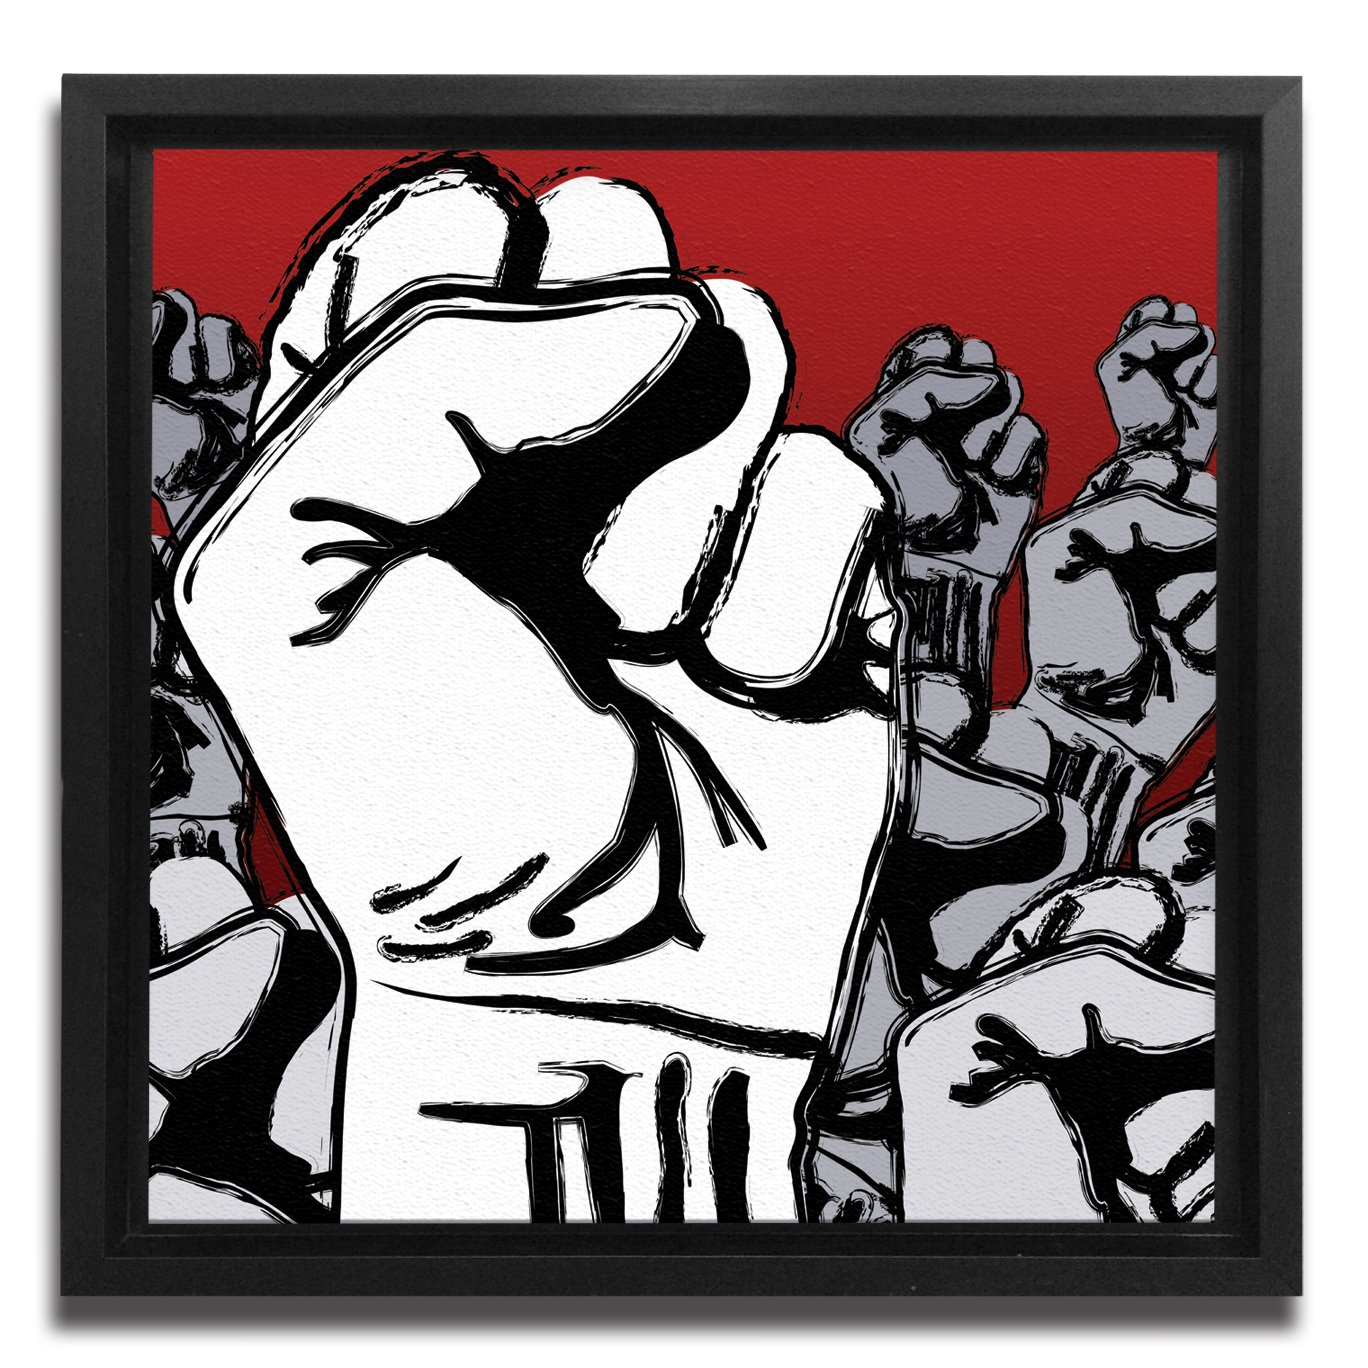 JP London Ready to Hang Made in North America Framed 1.5in Thick Gallery Wrap Canvas Wall Art Fight The Power The Fist Grafitti 18in SQSFCNV0044